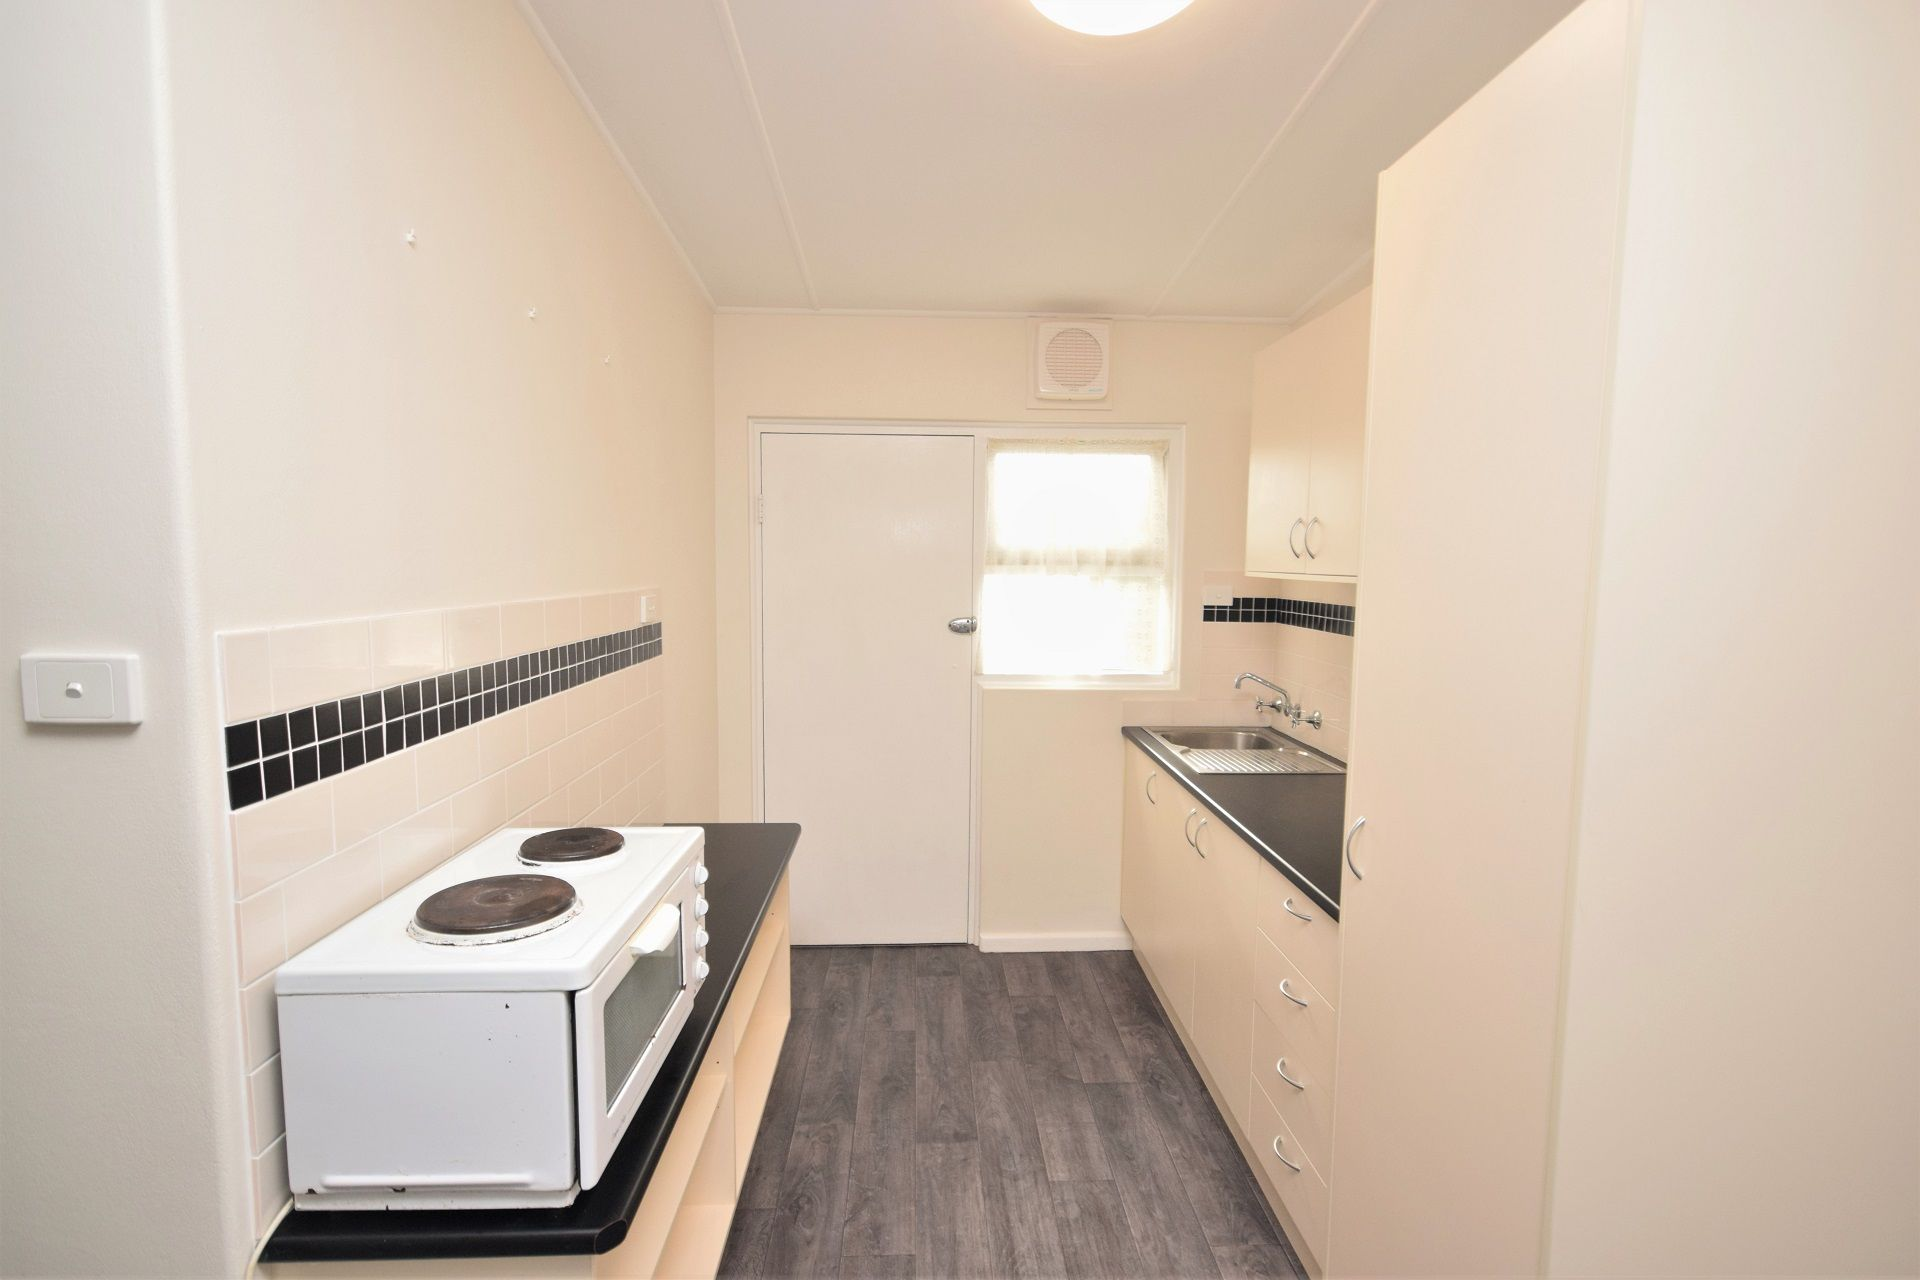 Nambucca Heads Real Estate: Renovated 2 bedroom unit